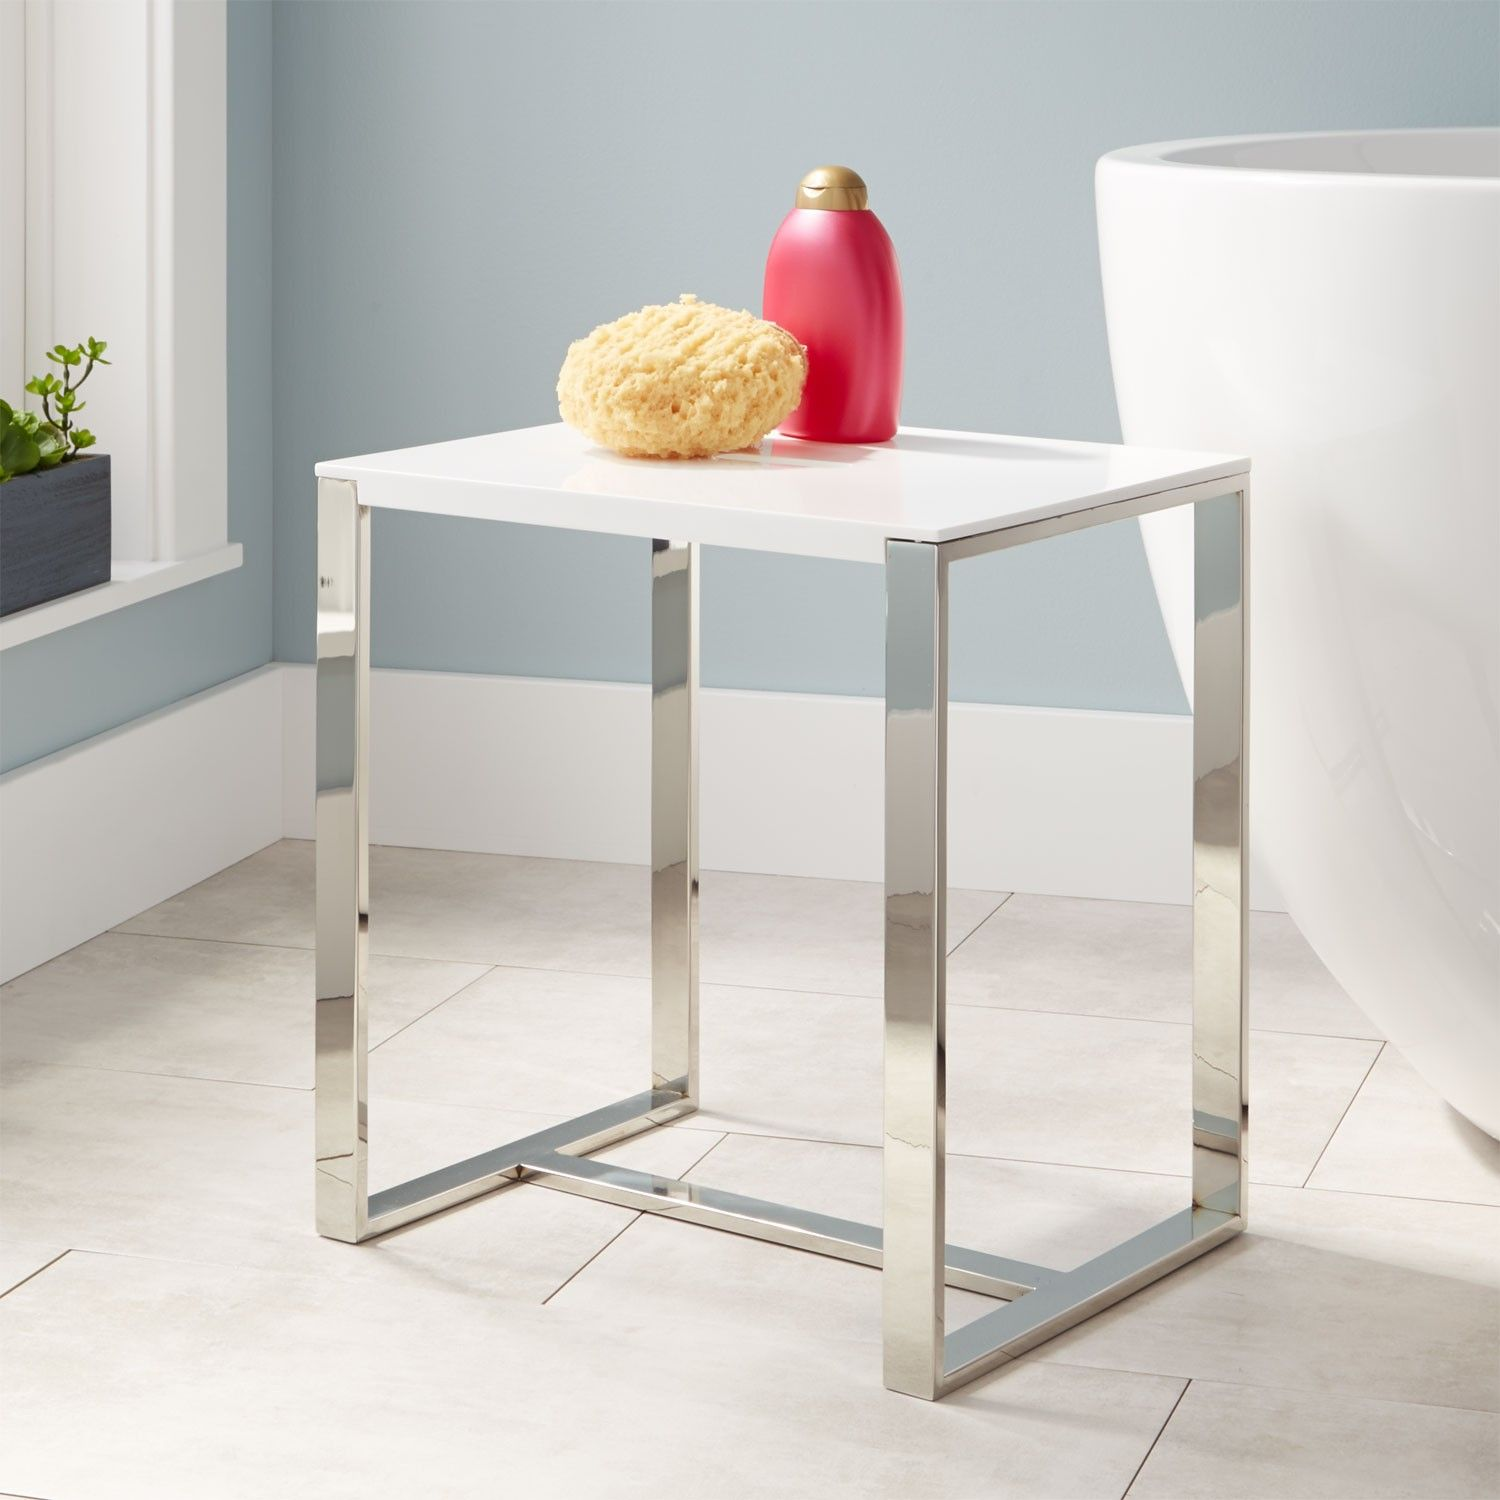 Paley+Resin+Bath+Stool+-+White+Gloss+Finish+with+Stainless+Steel+ ...